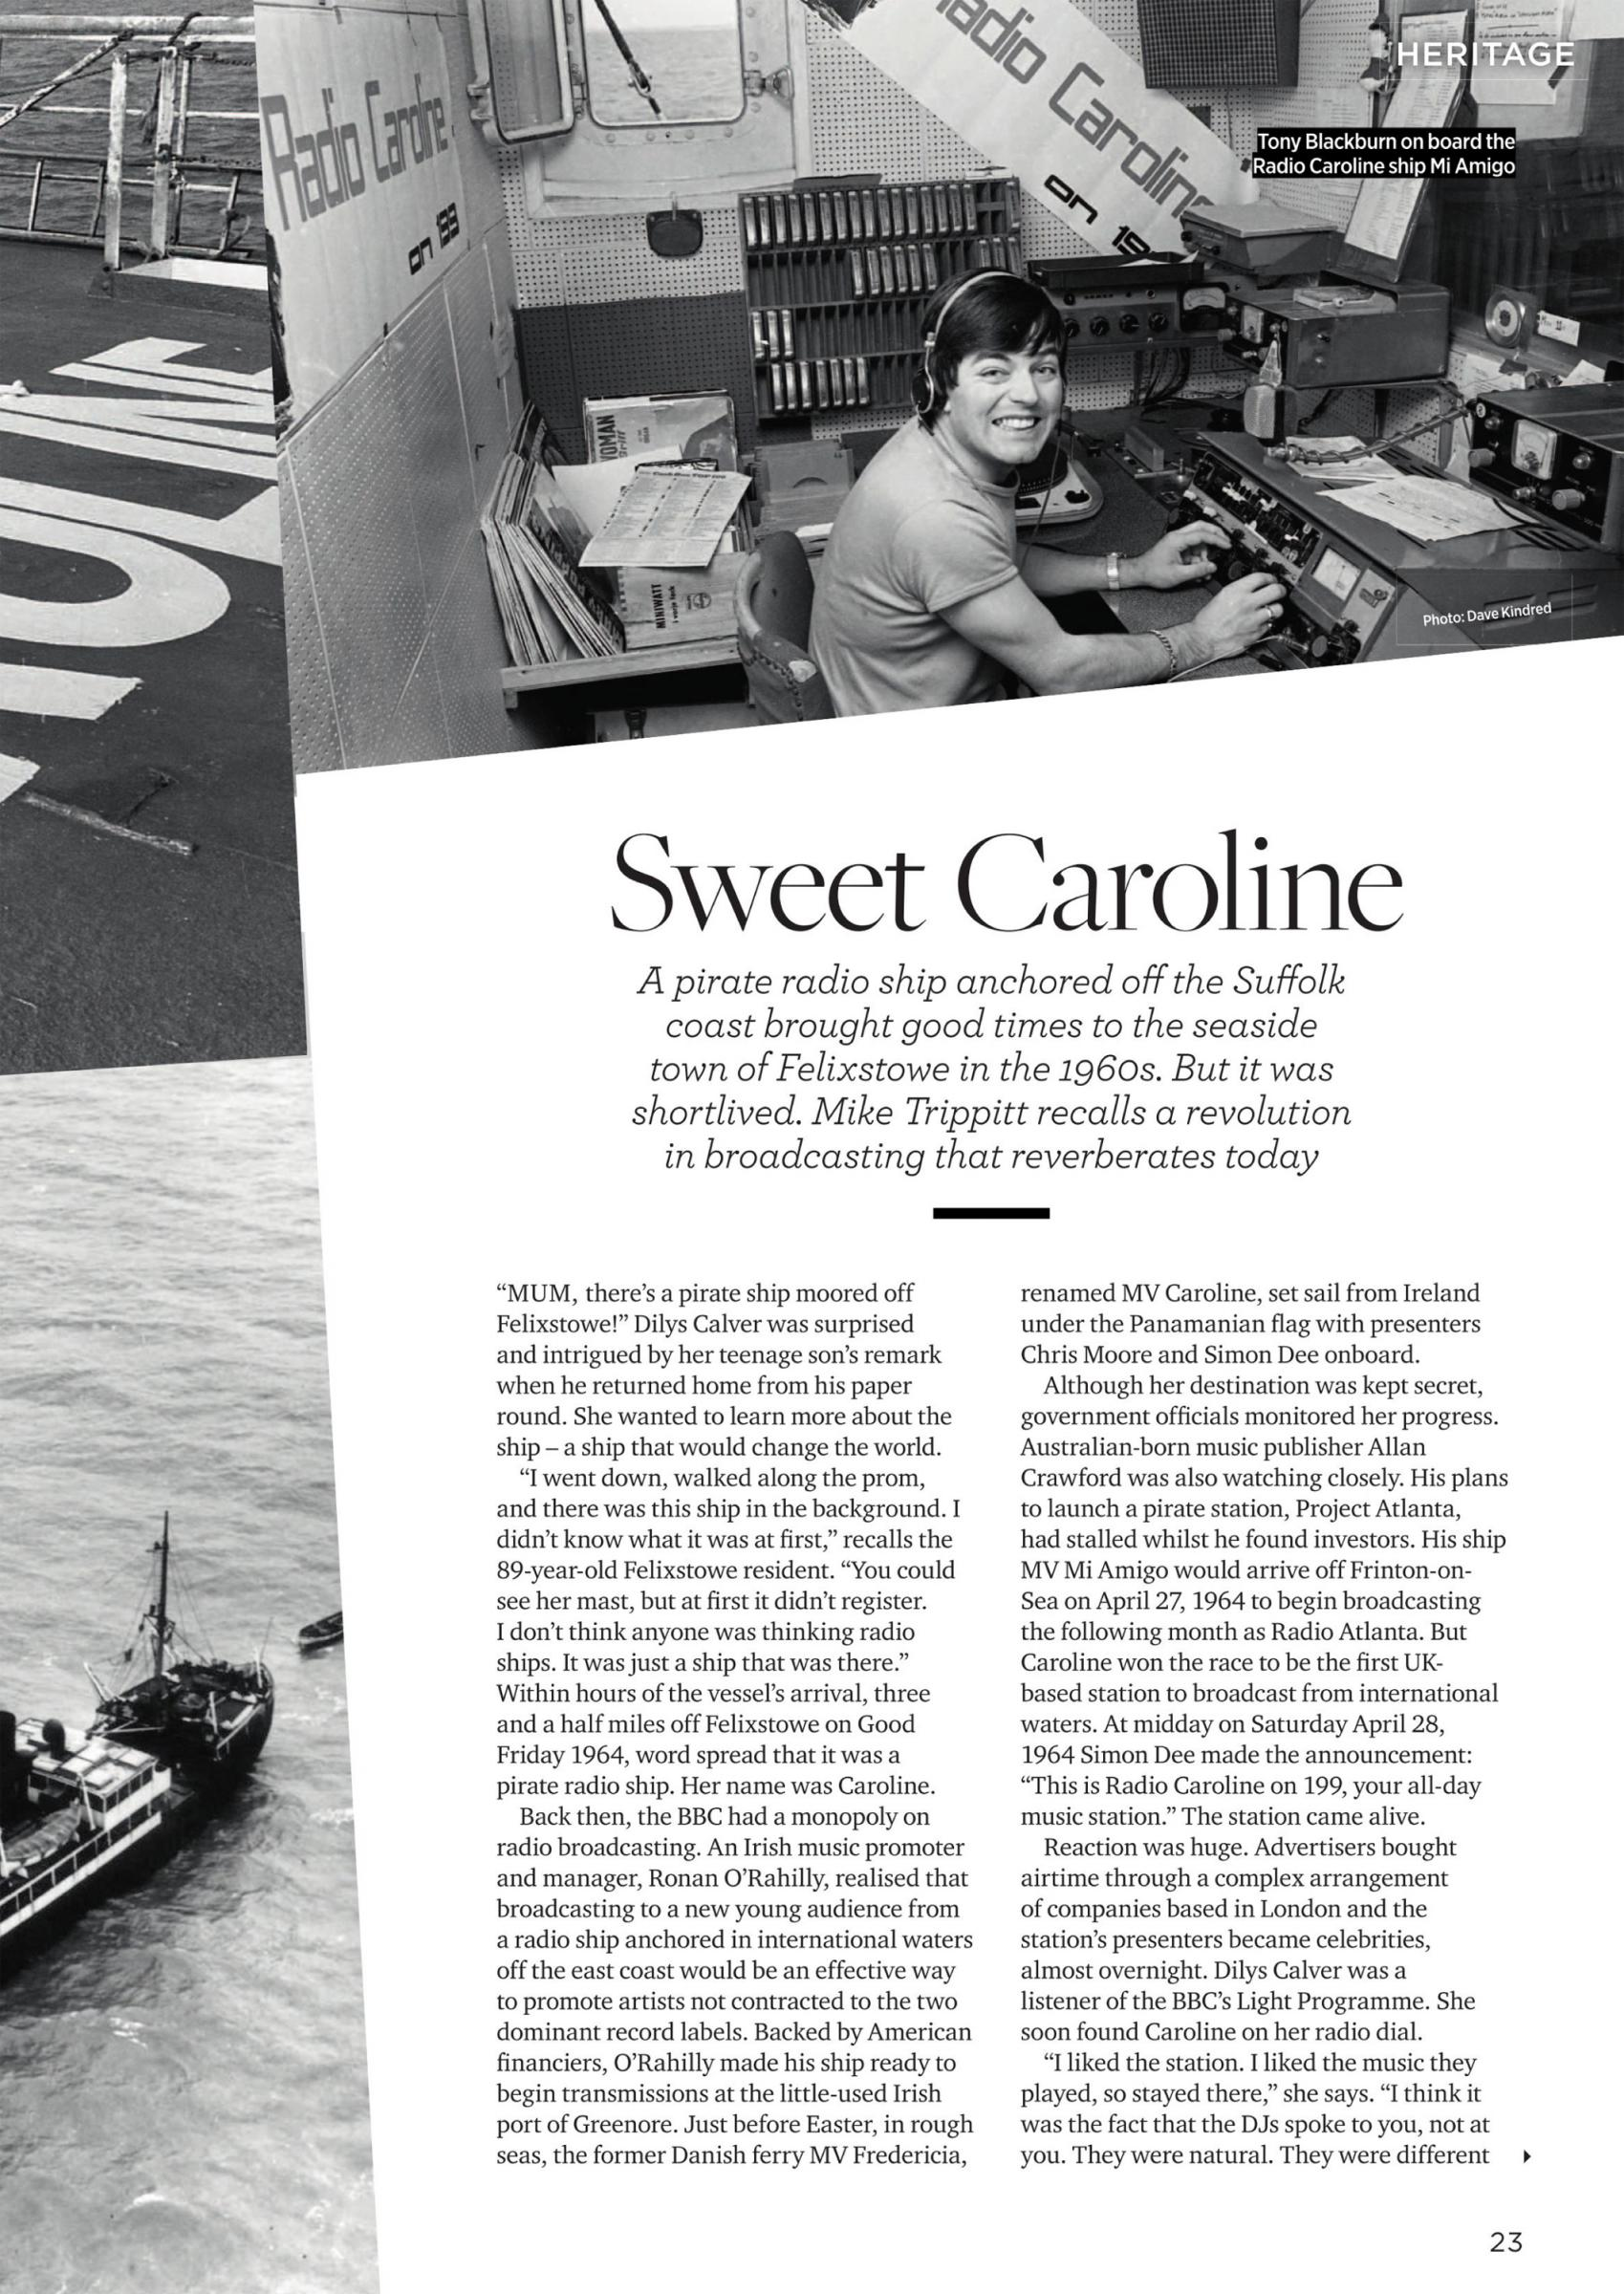 20170801_Radio Caroline Suffolk magazine 02.jpg